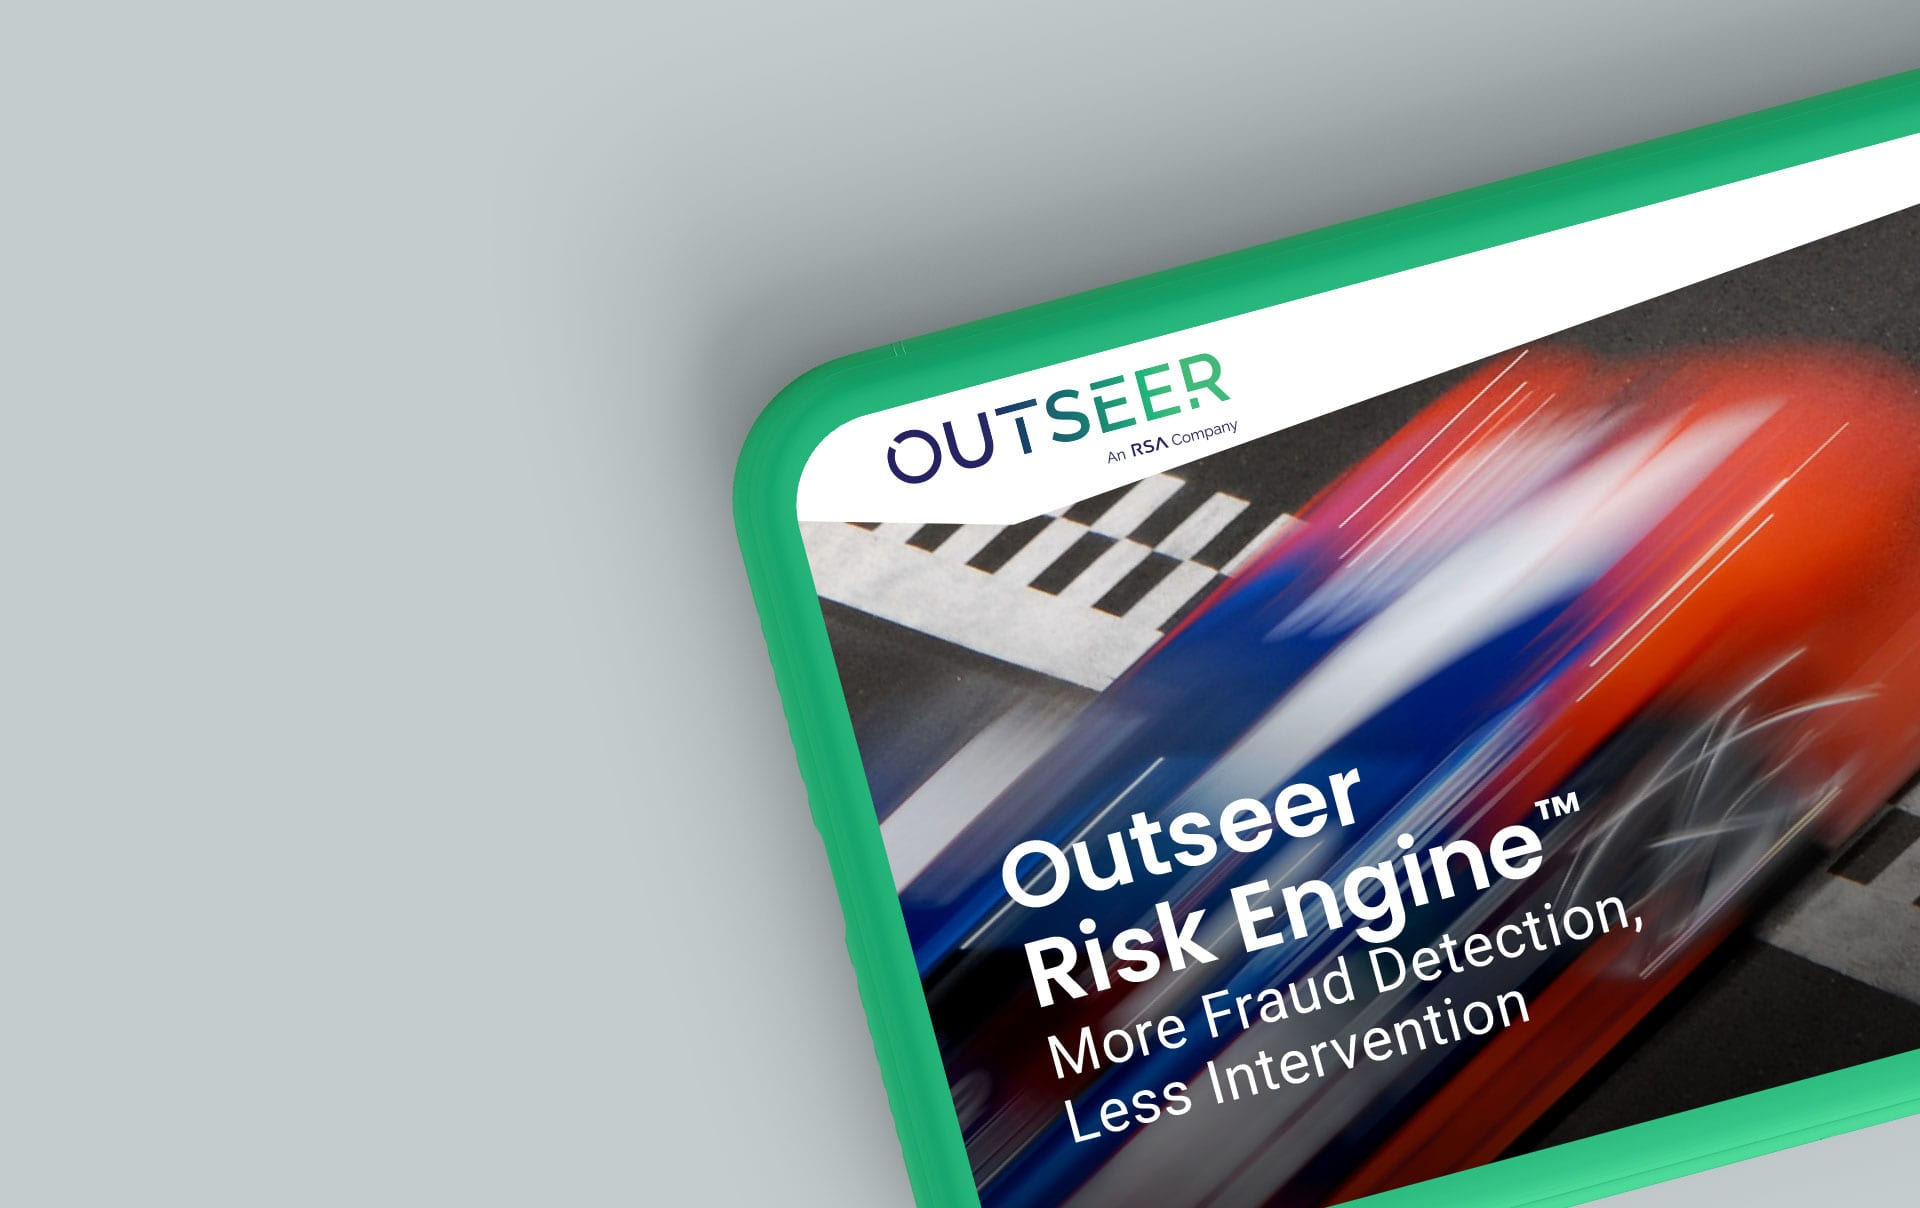 Outseer Risk Engine More Fraud Detection, Less Intervention graphic